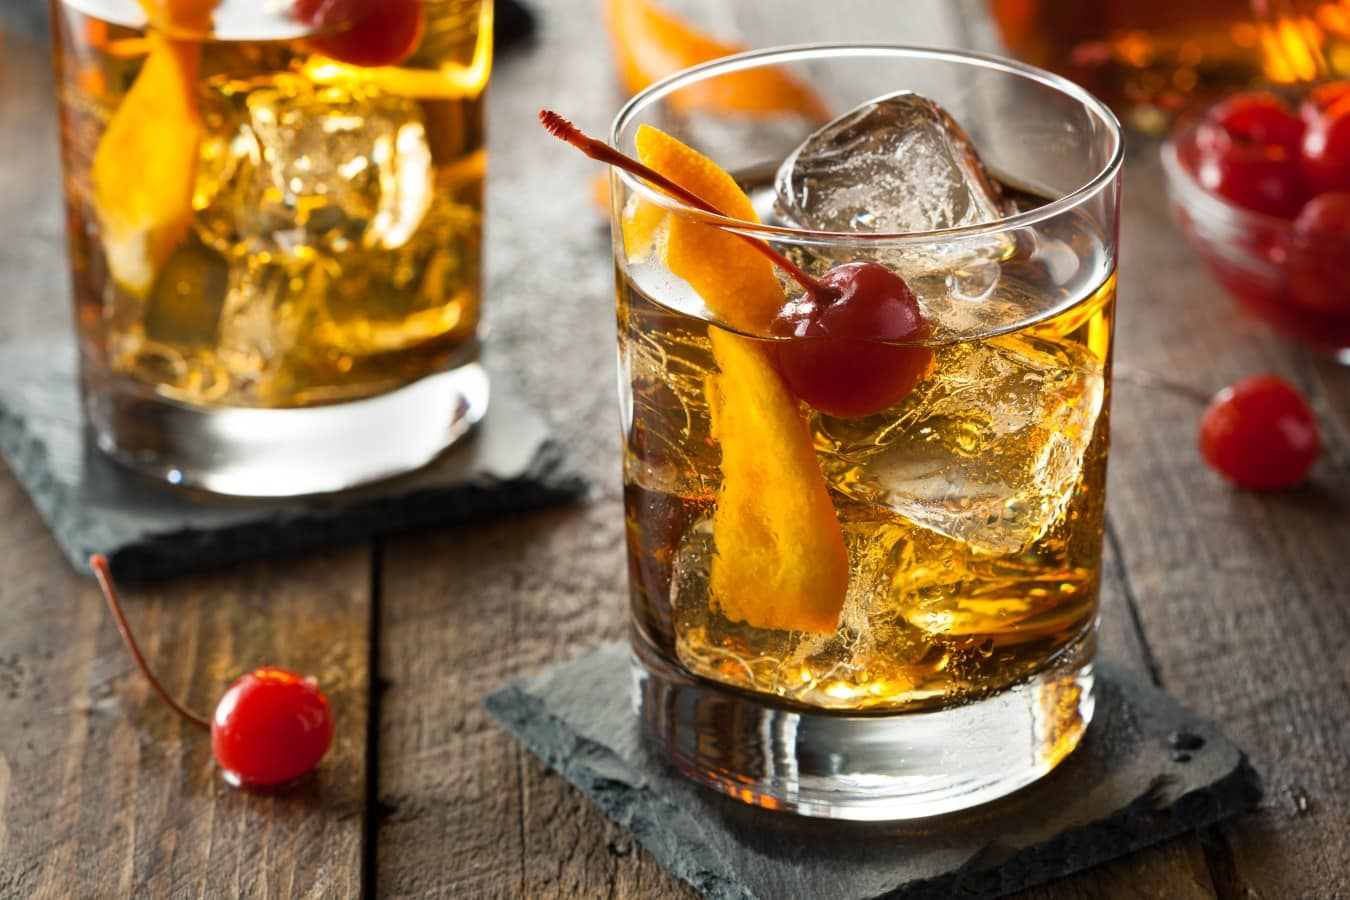 You'll love these whisky cocktails if you're an Old Fashioned fan